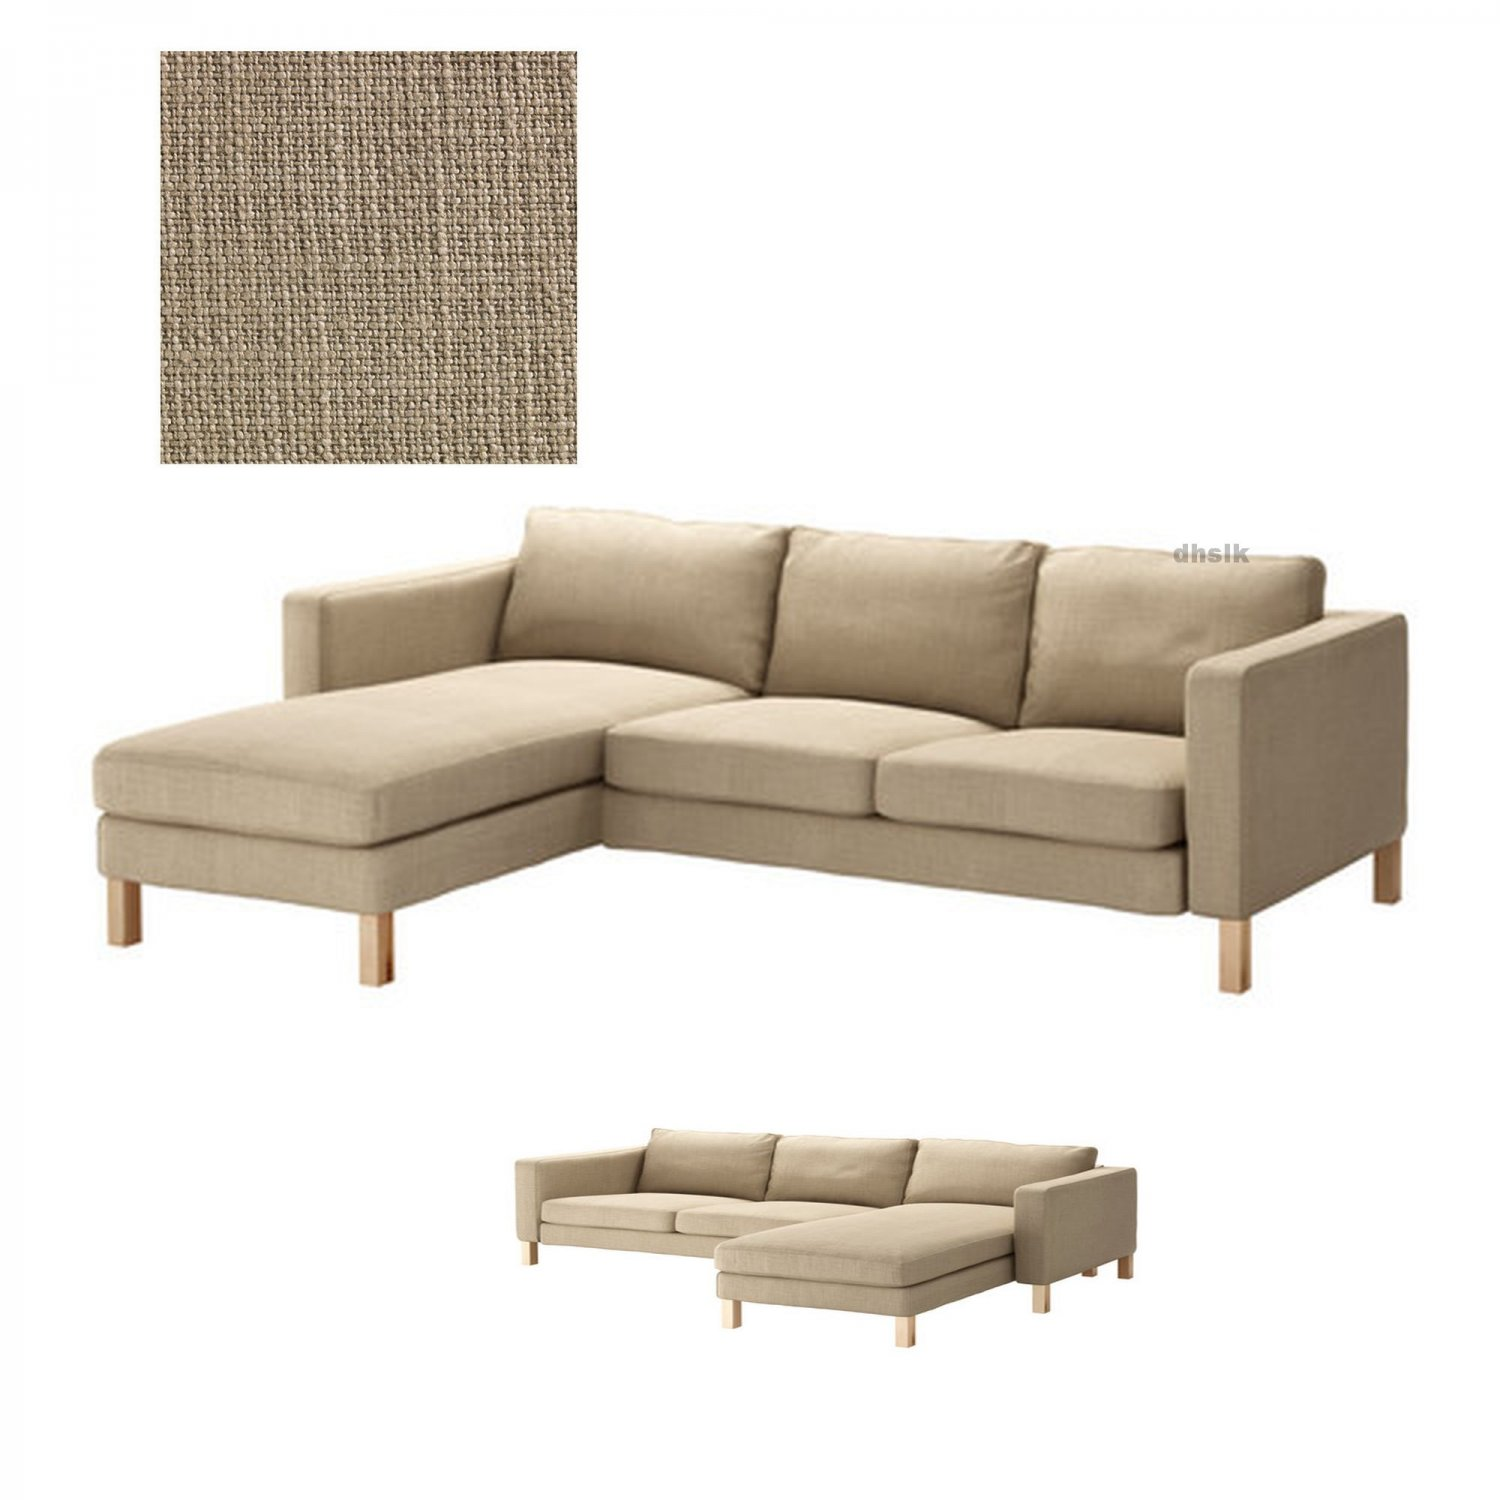 Covers For Ikea Karlstad Sofa: IKEA KARLSTAD 2 Seat Loveseat Sofa And Chaise SLIPCOVER